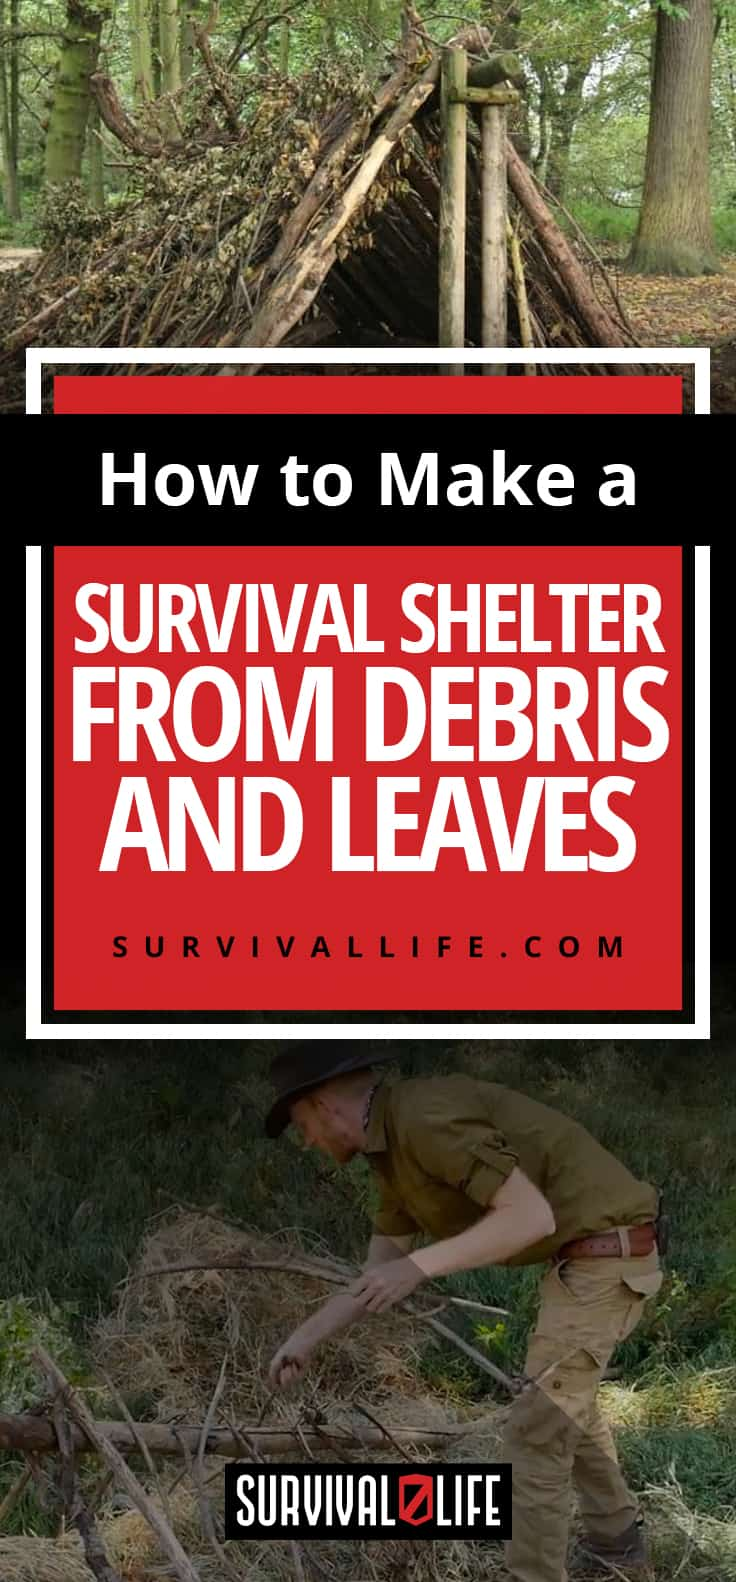 How to Make a Survival Shelter From Debris and Leaves